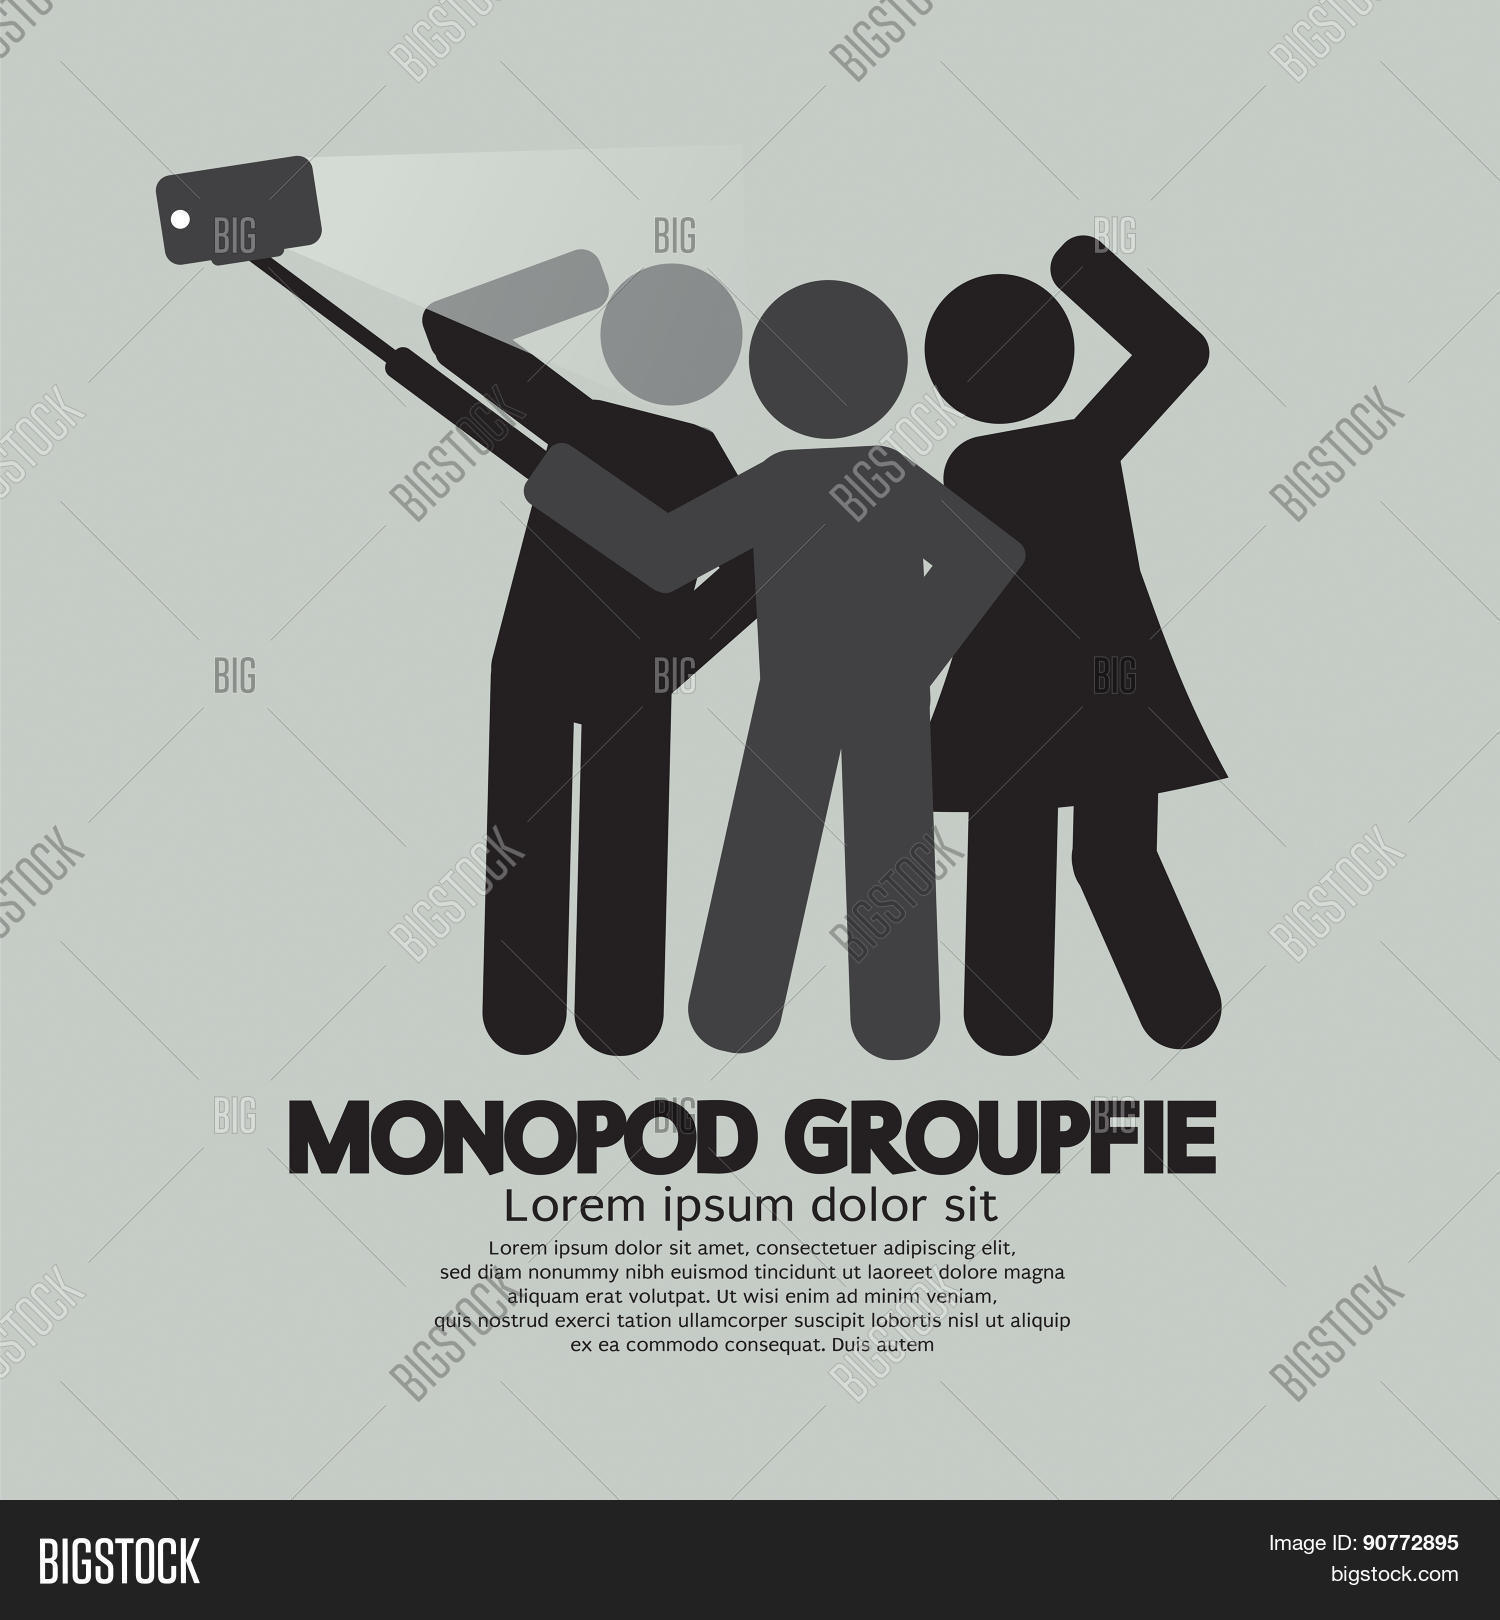 black,camera,cheerful,design,flat,friends,fun,graphic,group,groupfie,happiness,hipster,icon,illustration,isolated,laughing,lifestyle,mobile,monopod,people,phone,photo,photographing,picture,portrait,self,selfie,sign,smartphone,smiling,stick,symbol,taking,tool,vector